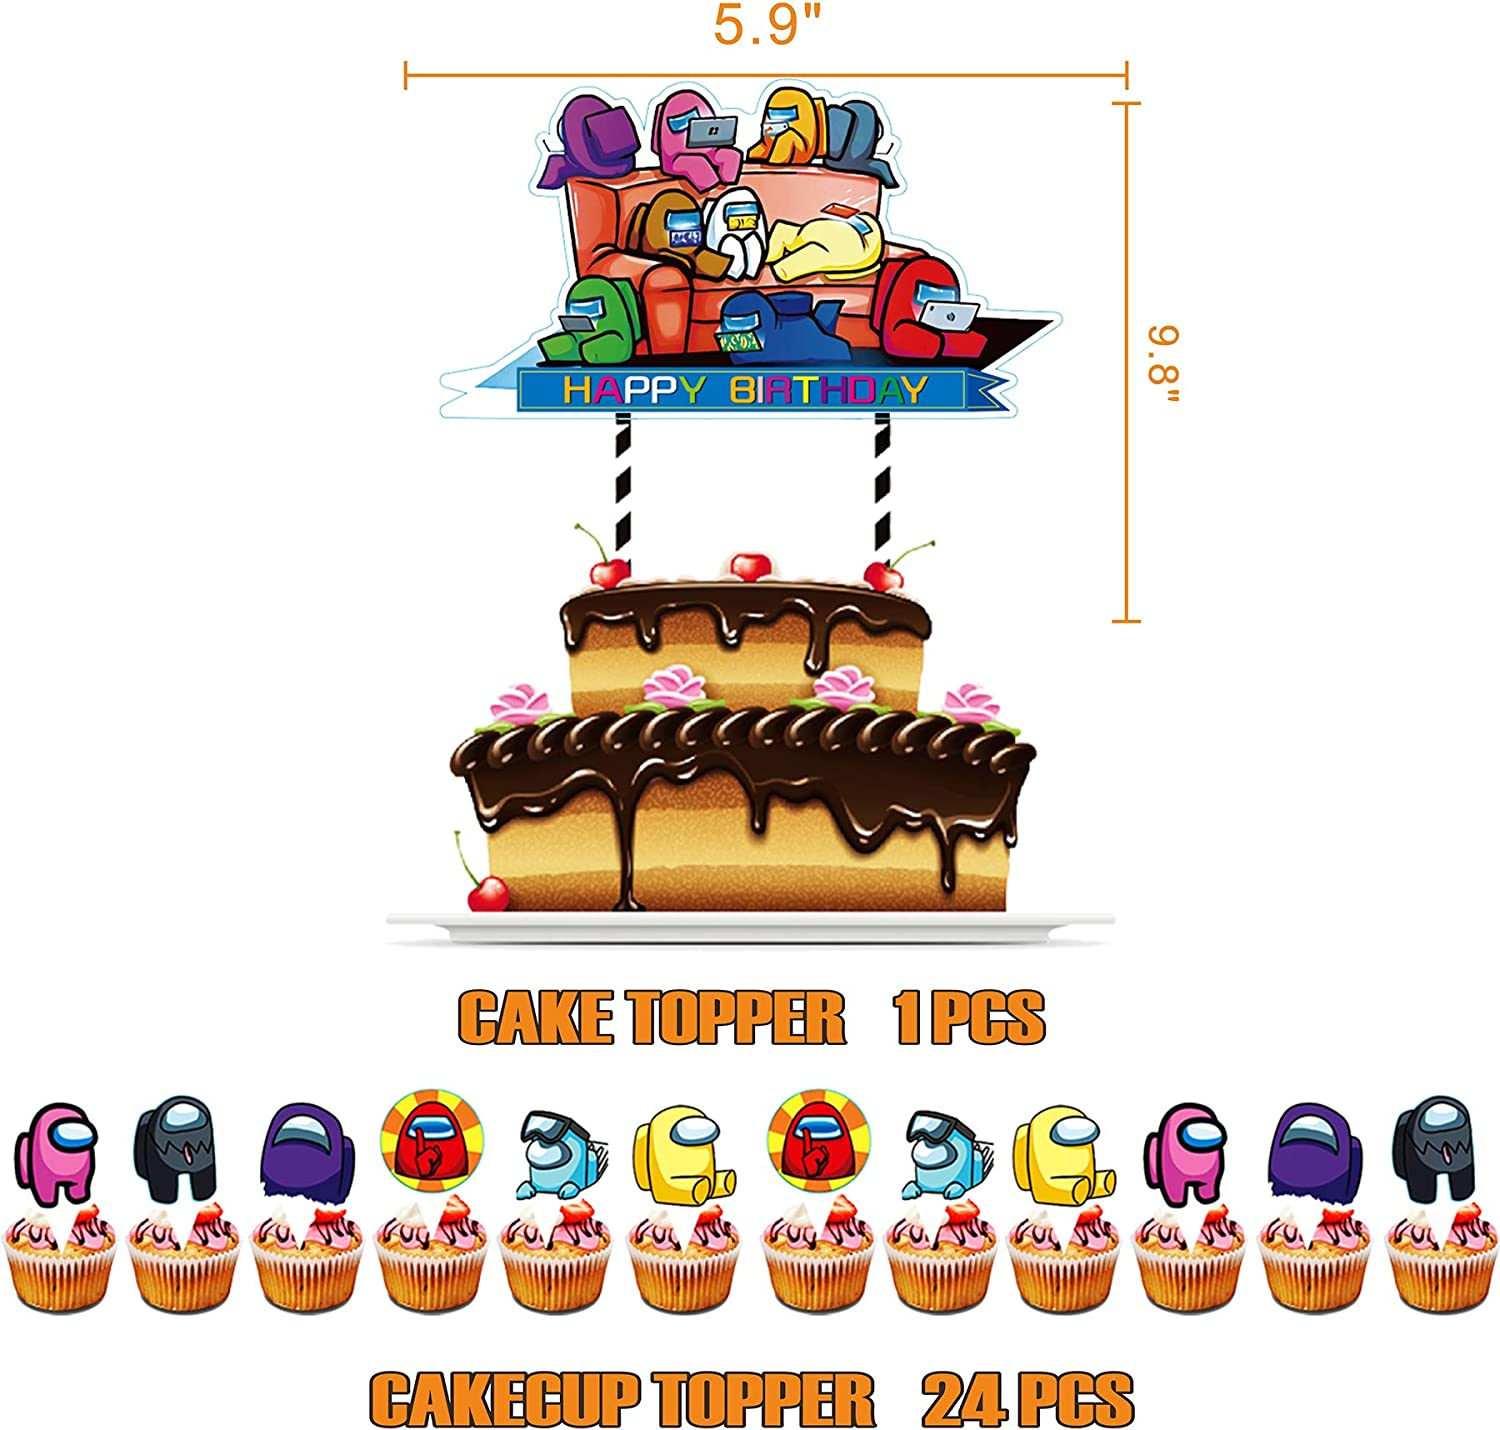 Including Among Us theme Party Banners Knives Spoons Cake Toppers Among Us Party Supplies Among Us Birthday Decorations for Among Us Themed Kids Birthday Party Forks Table cover Plates Balloons Napkins